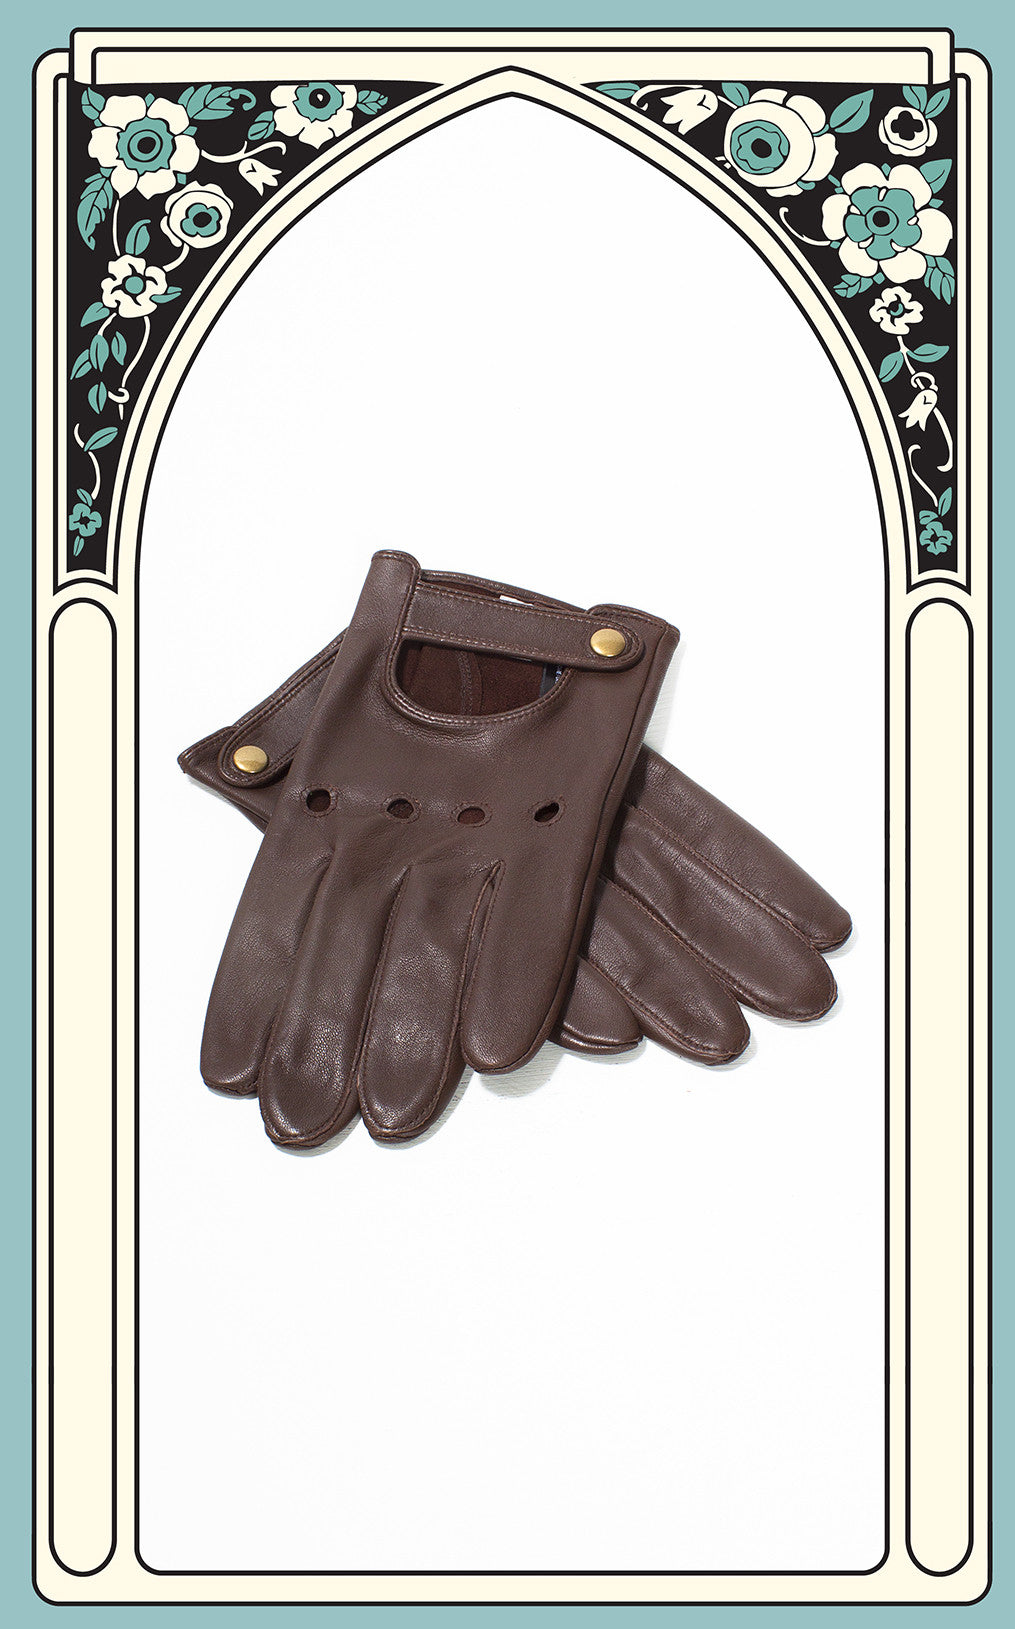 Men's Reproduction Chocolate Brown Leather Driving Gloves